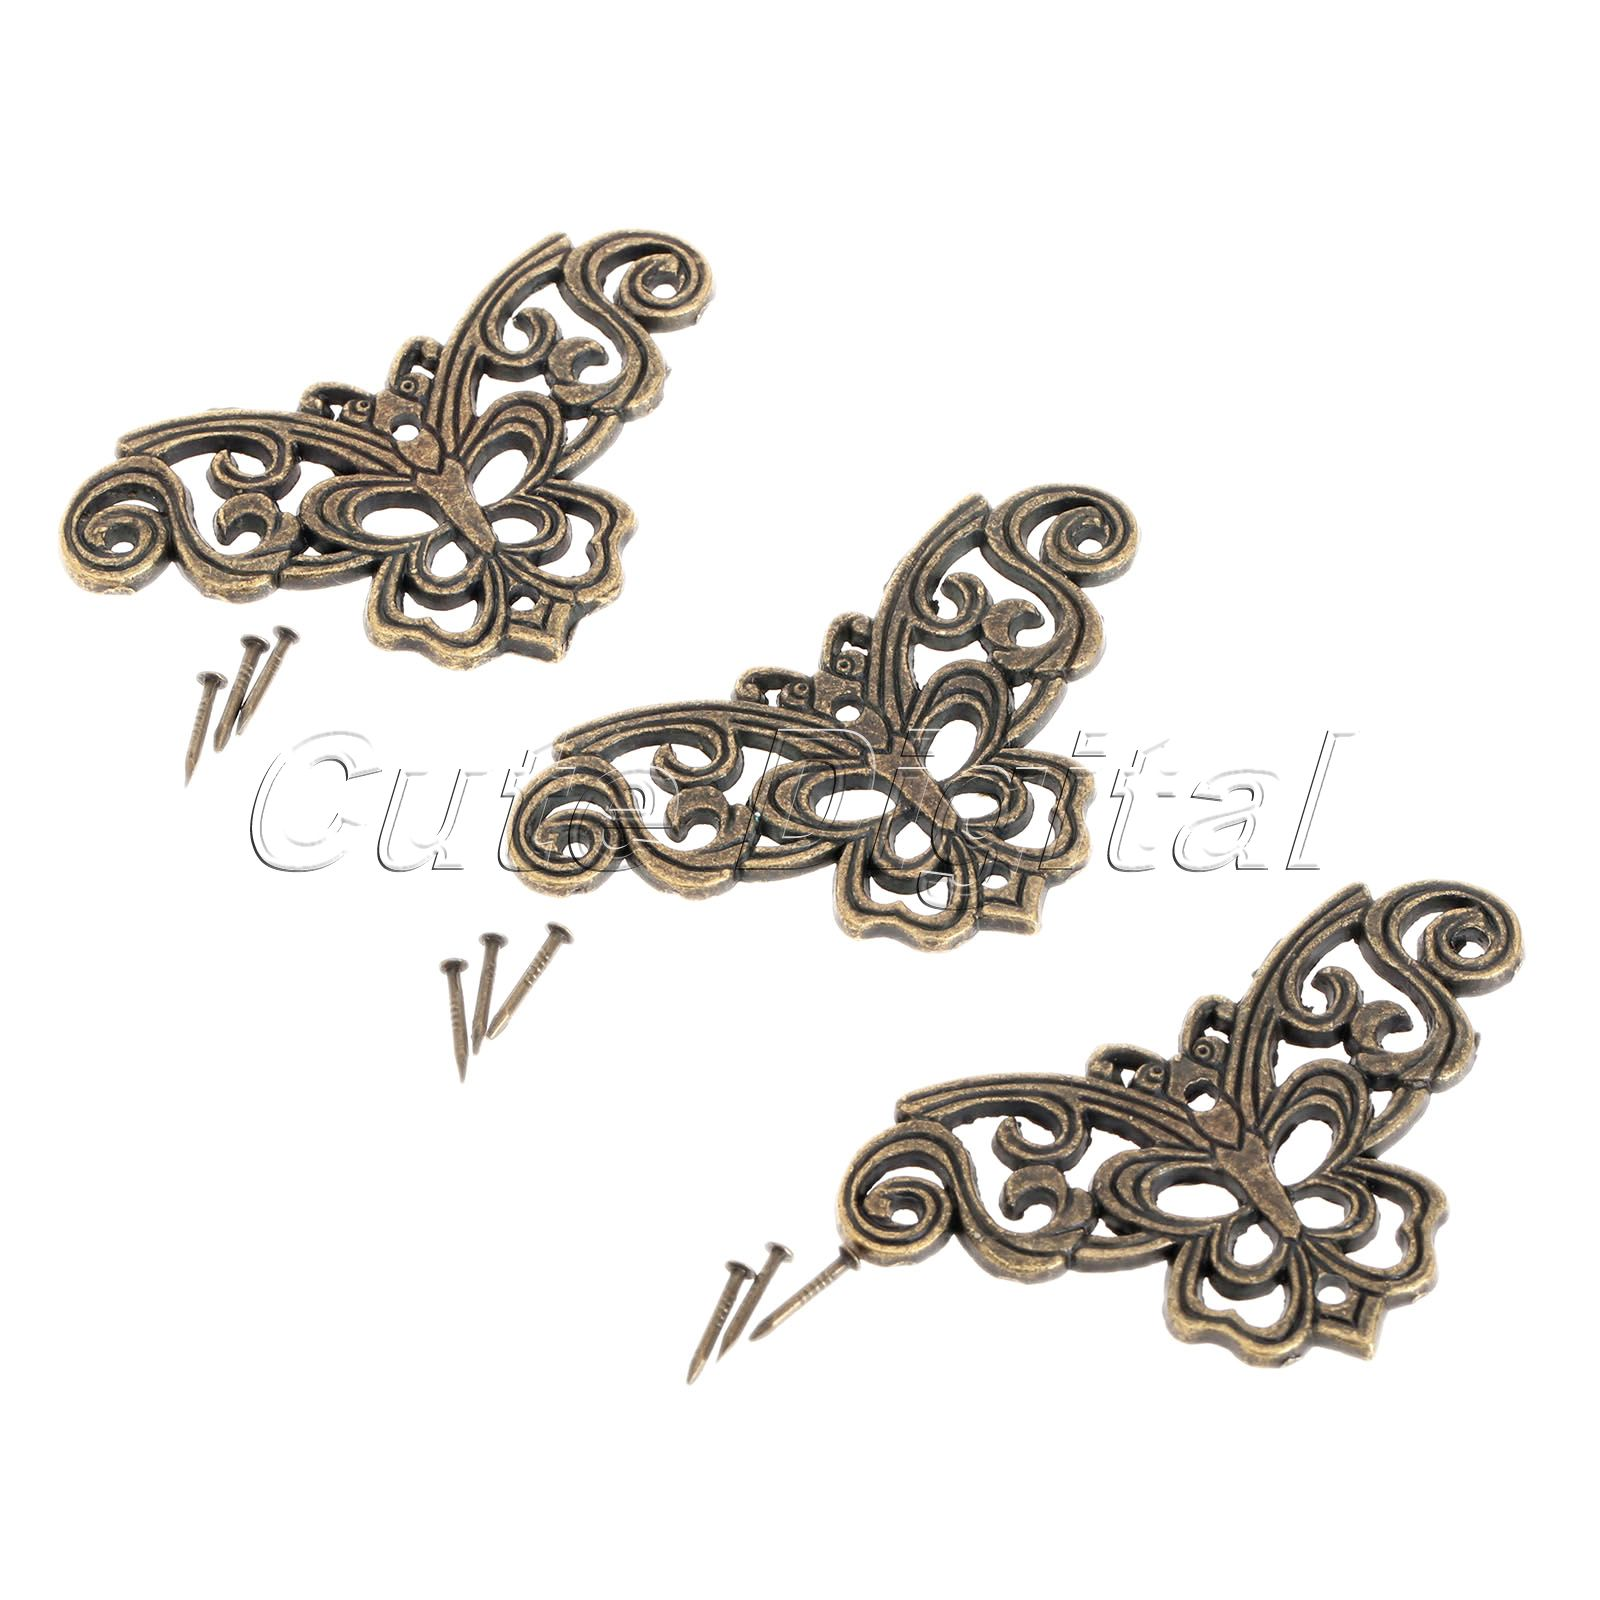 12pcs Metal Decorative Corner Bracket For Furniture Wooden Box Feet Protector Ings In Brackets From Home